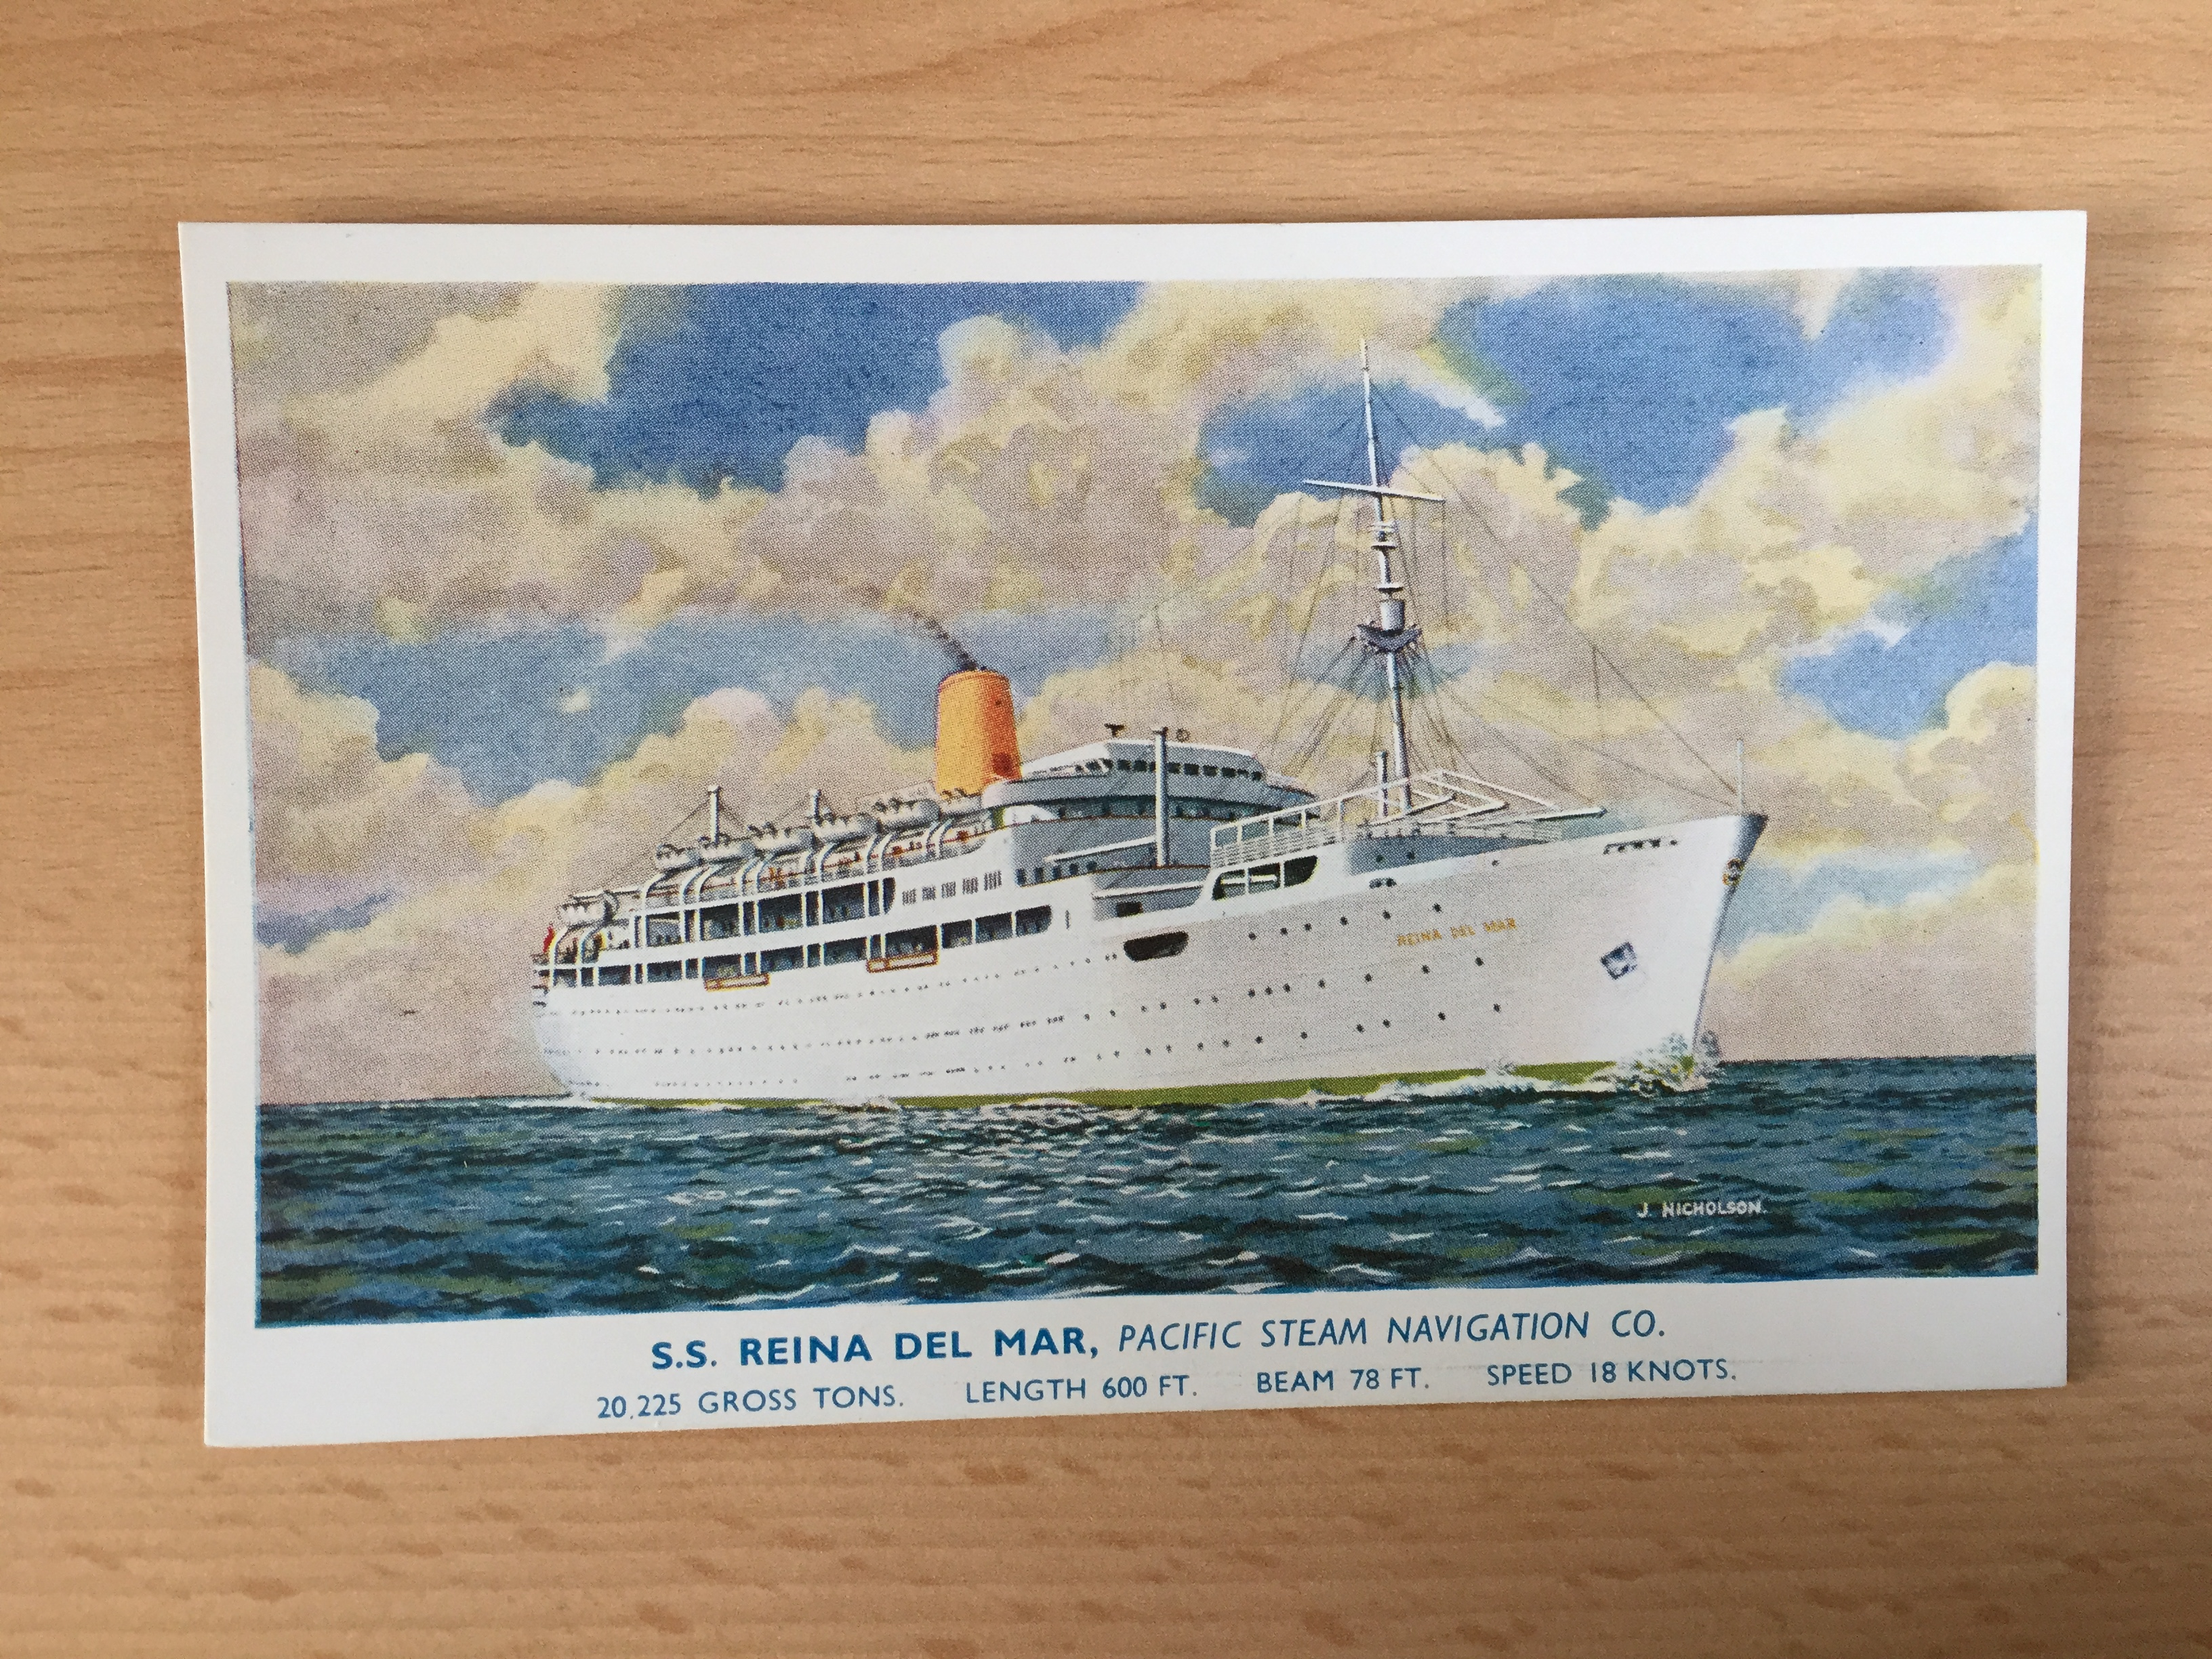 UNUSED COLOUR POSTCARD FROM THE VESSEL THE SS REINA DEL MAR FROM THE PACIFIC STEAM NAVIGATION COMPANY